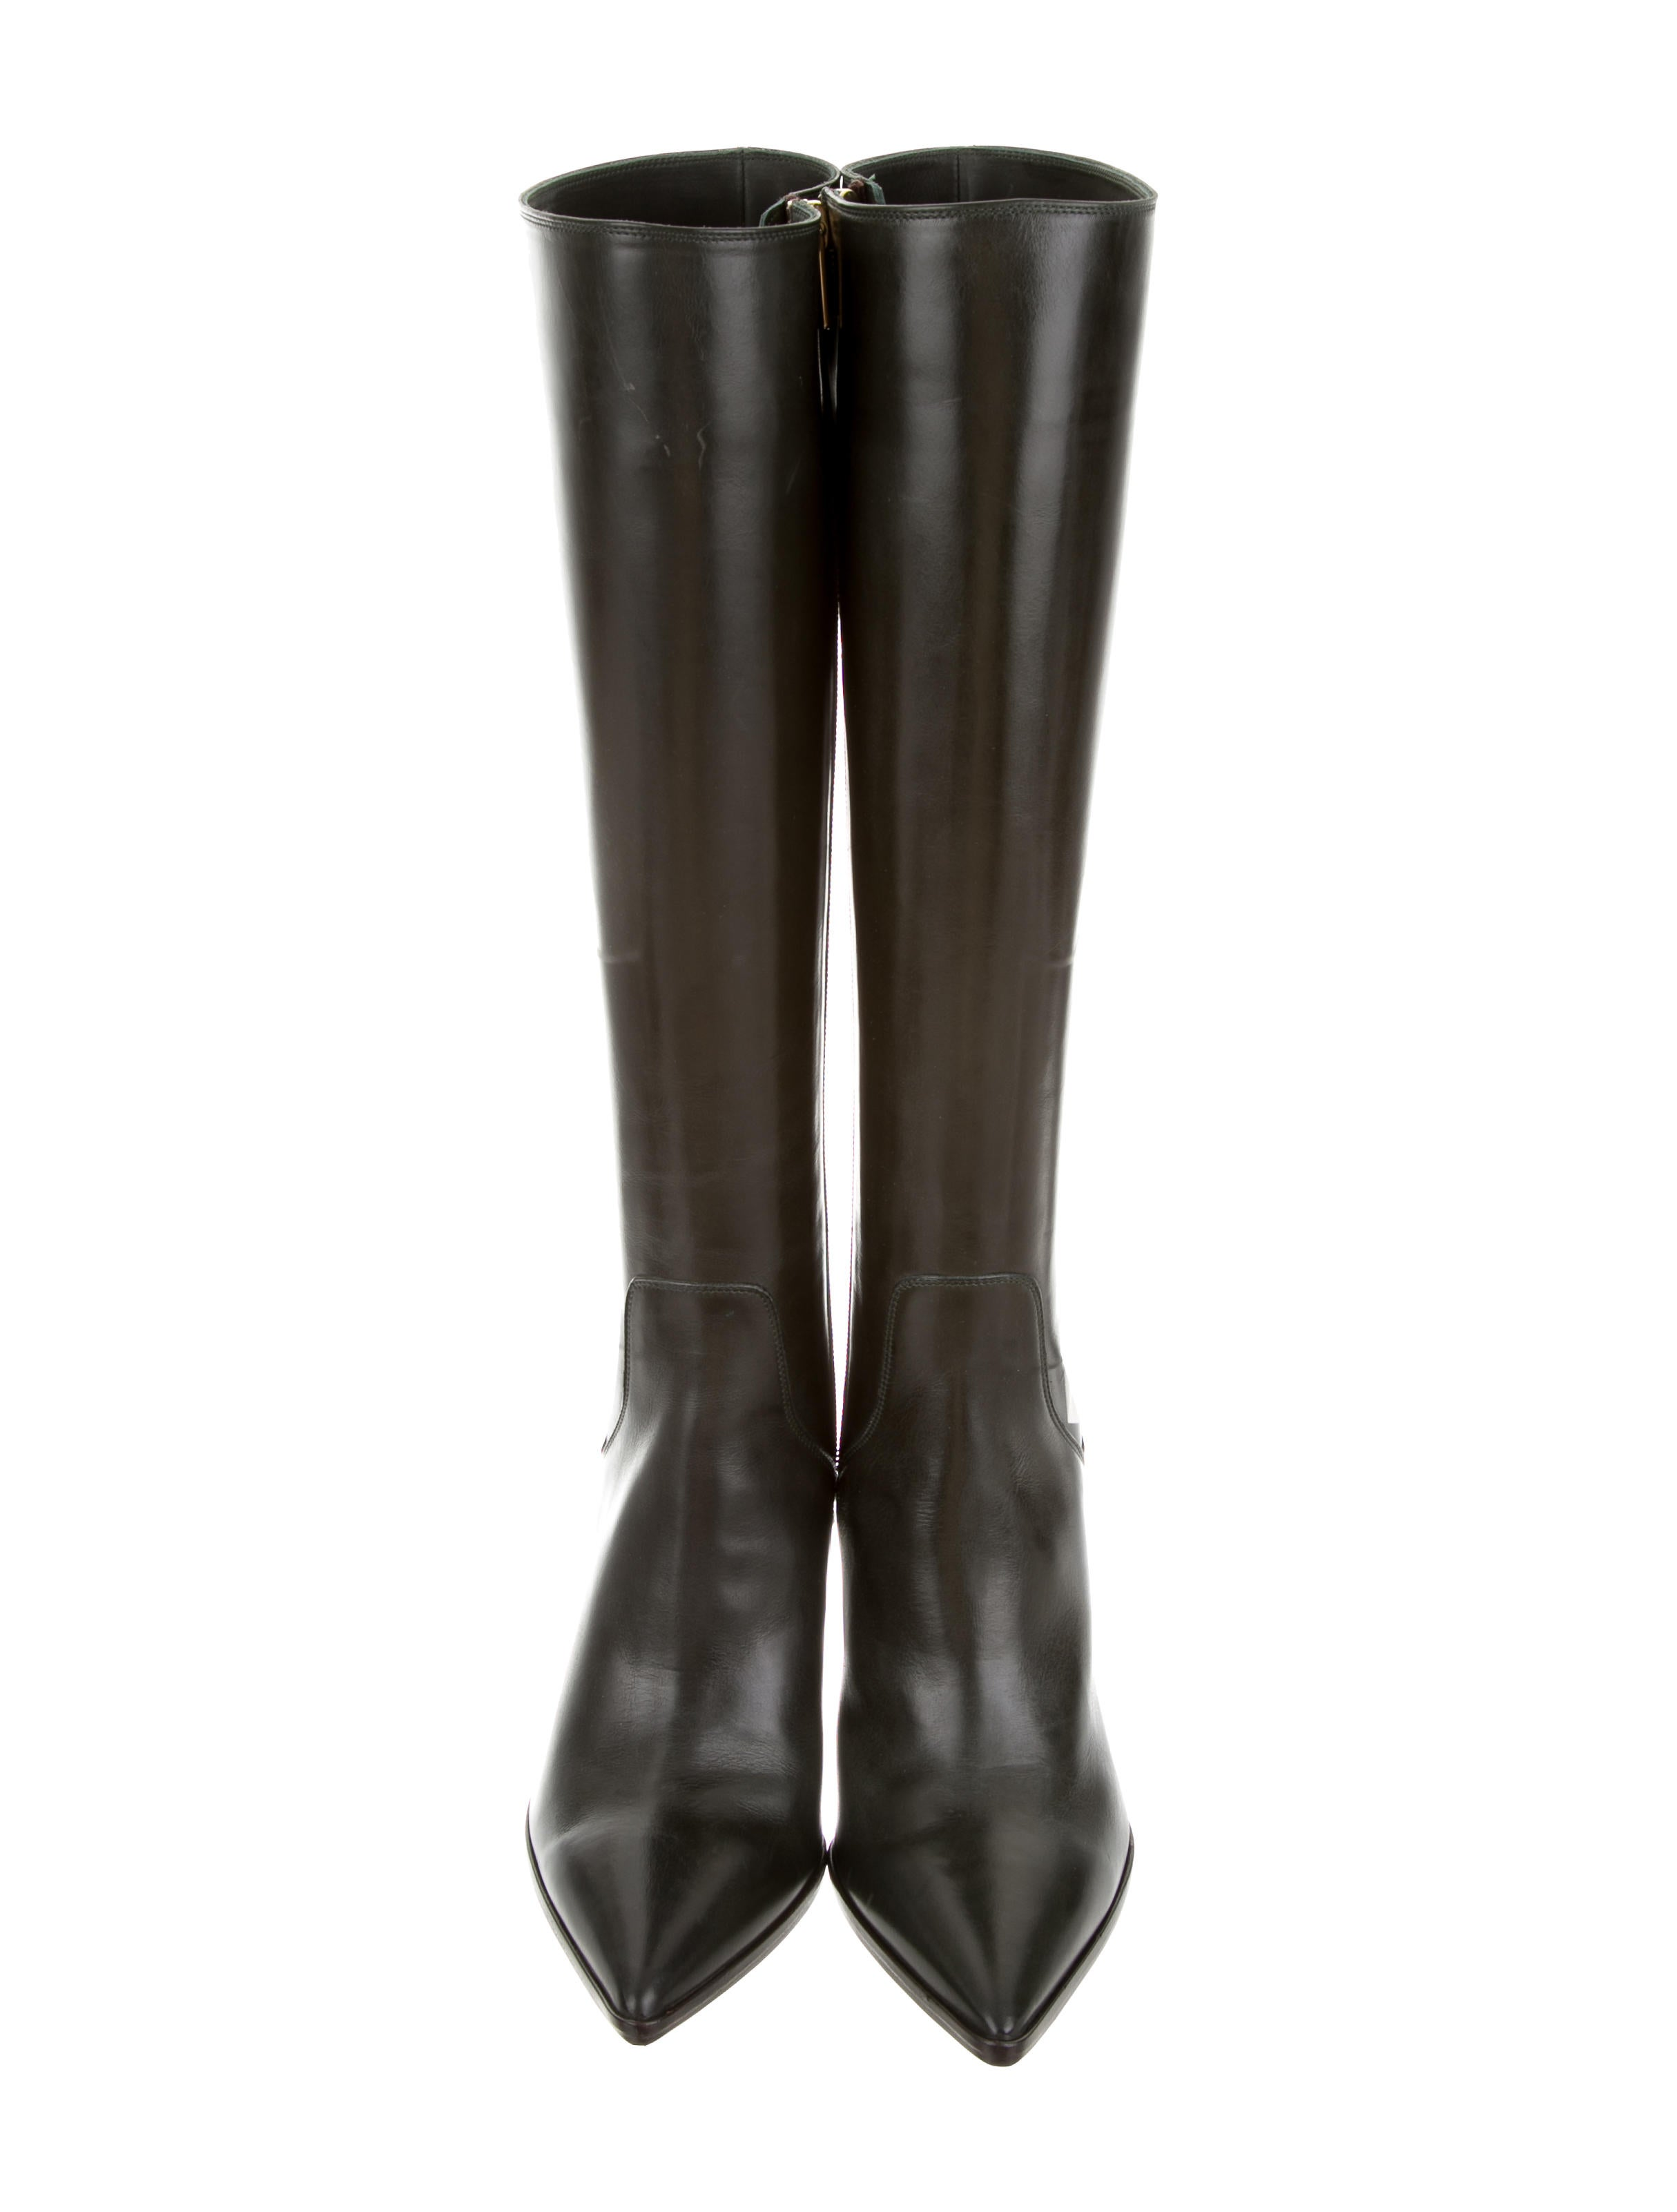 sale best place Fratelli Rossetti Leather Knee-High Boots w/ Tags outlet locations cheap online sale explore original sale online AEG1ZeYF